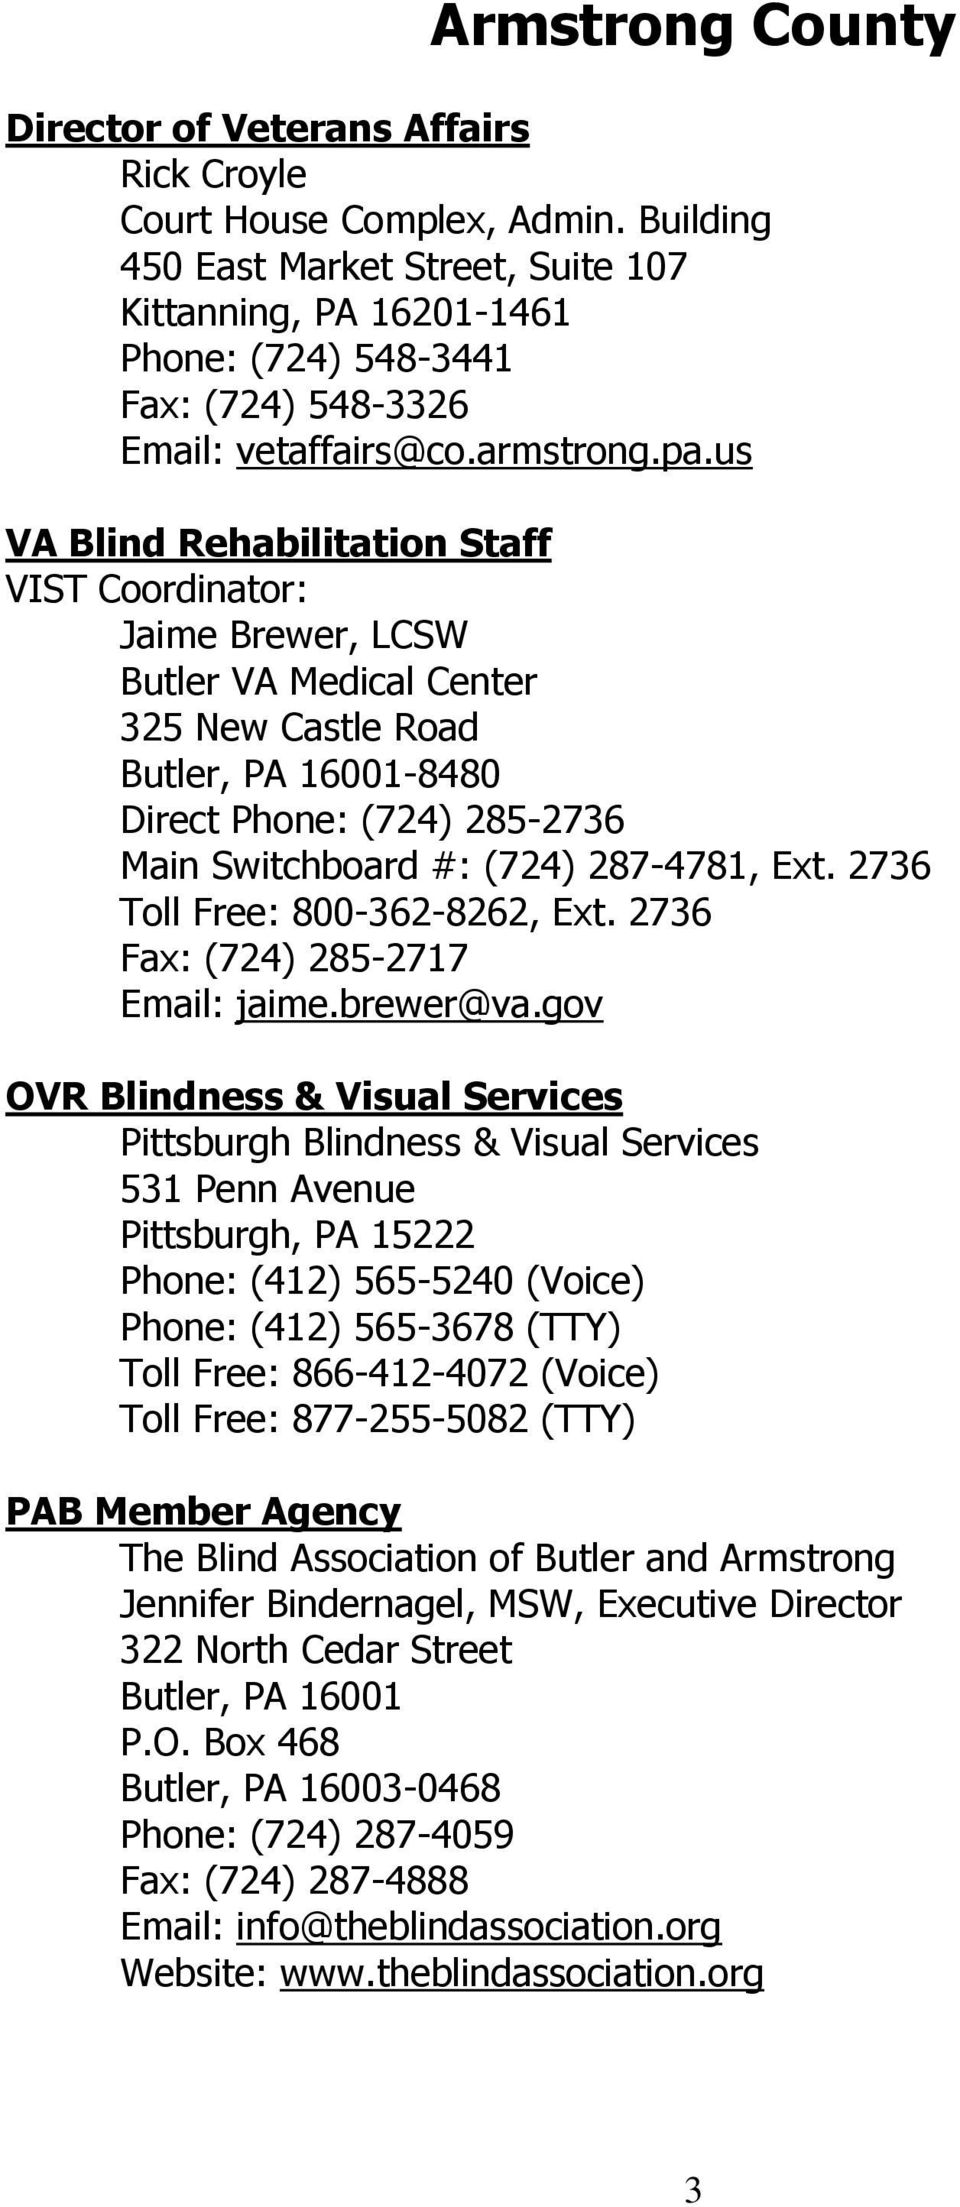 us Jaime Brewer, LCSW Butler VA Medical Center 325 New Castle Road Butler, PA 16001-8480 Direct Phone: (724) 285-2736 Main Switchboard #: (724) 287-4781, Ext. 2736 Toll Free: 800-362-8262, Ext.